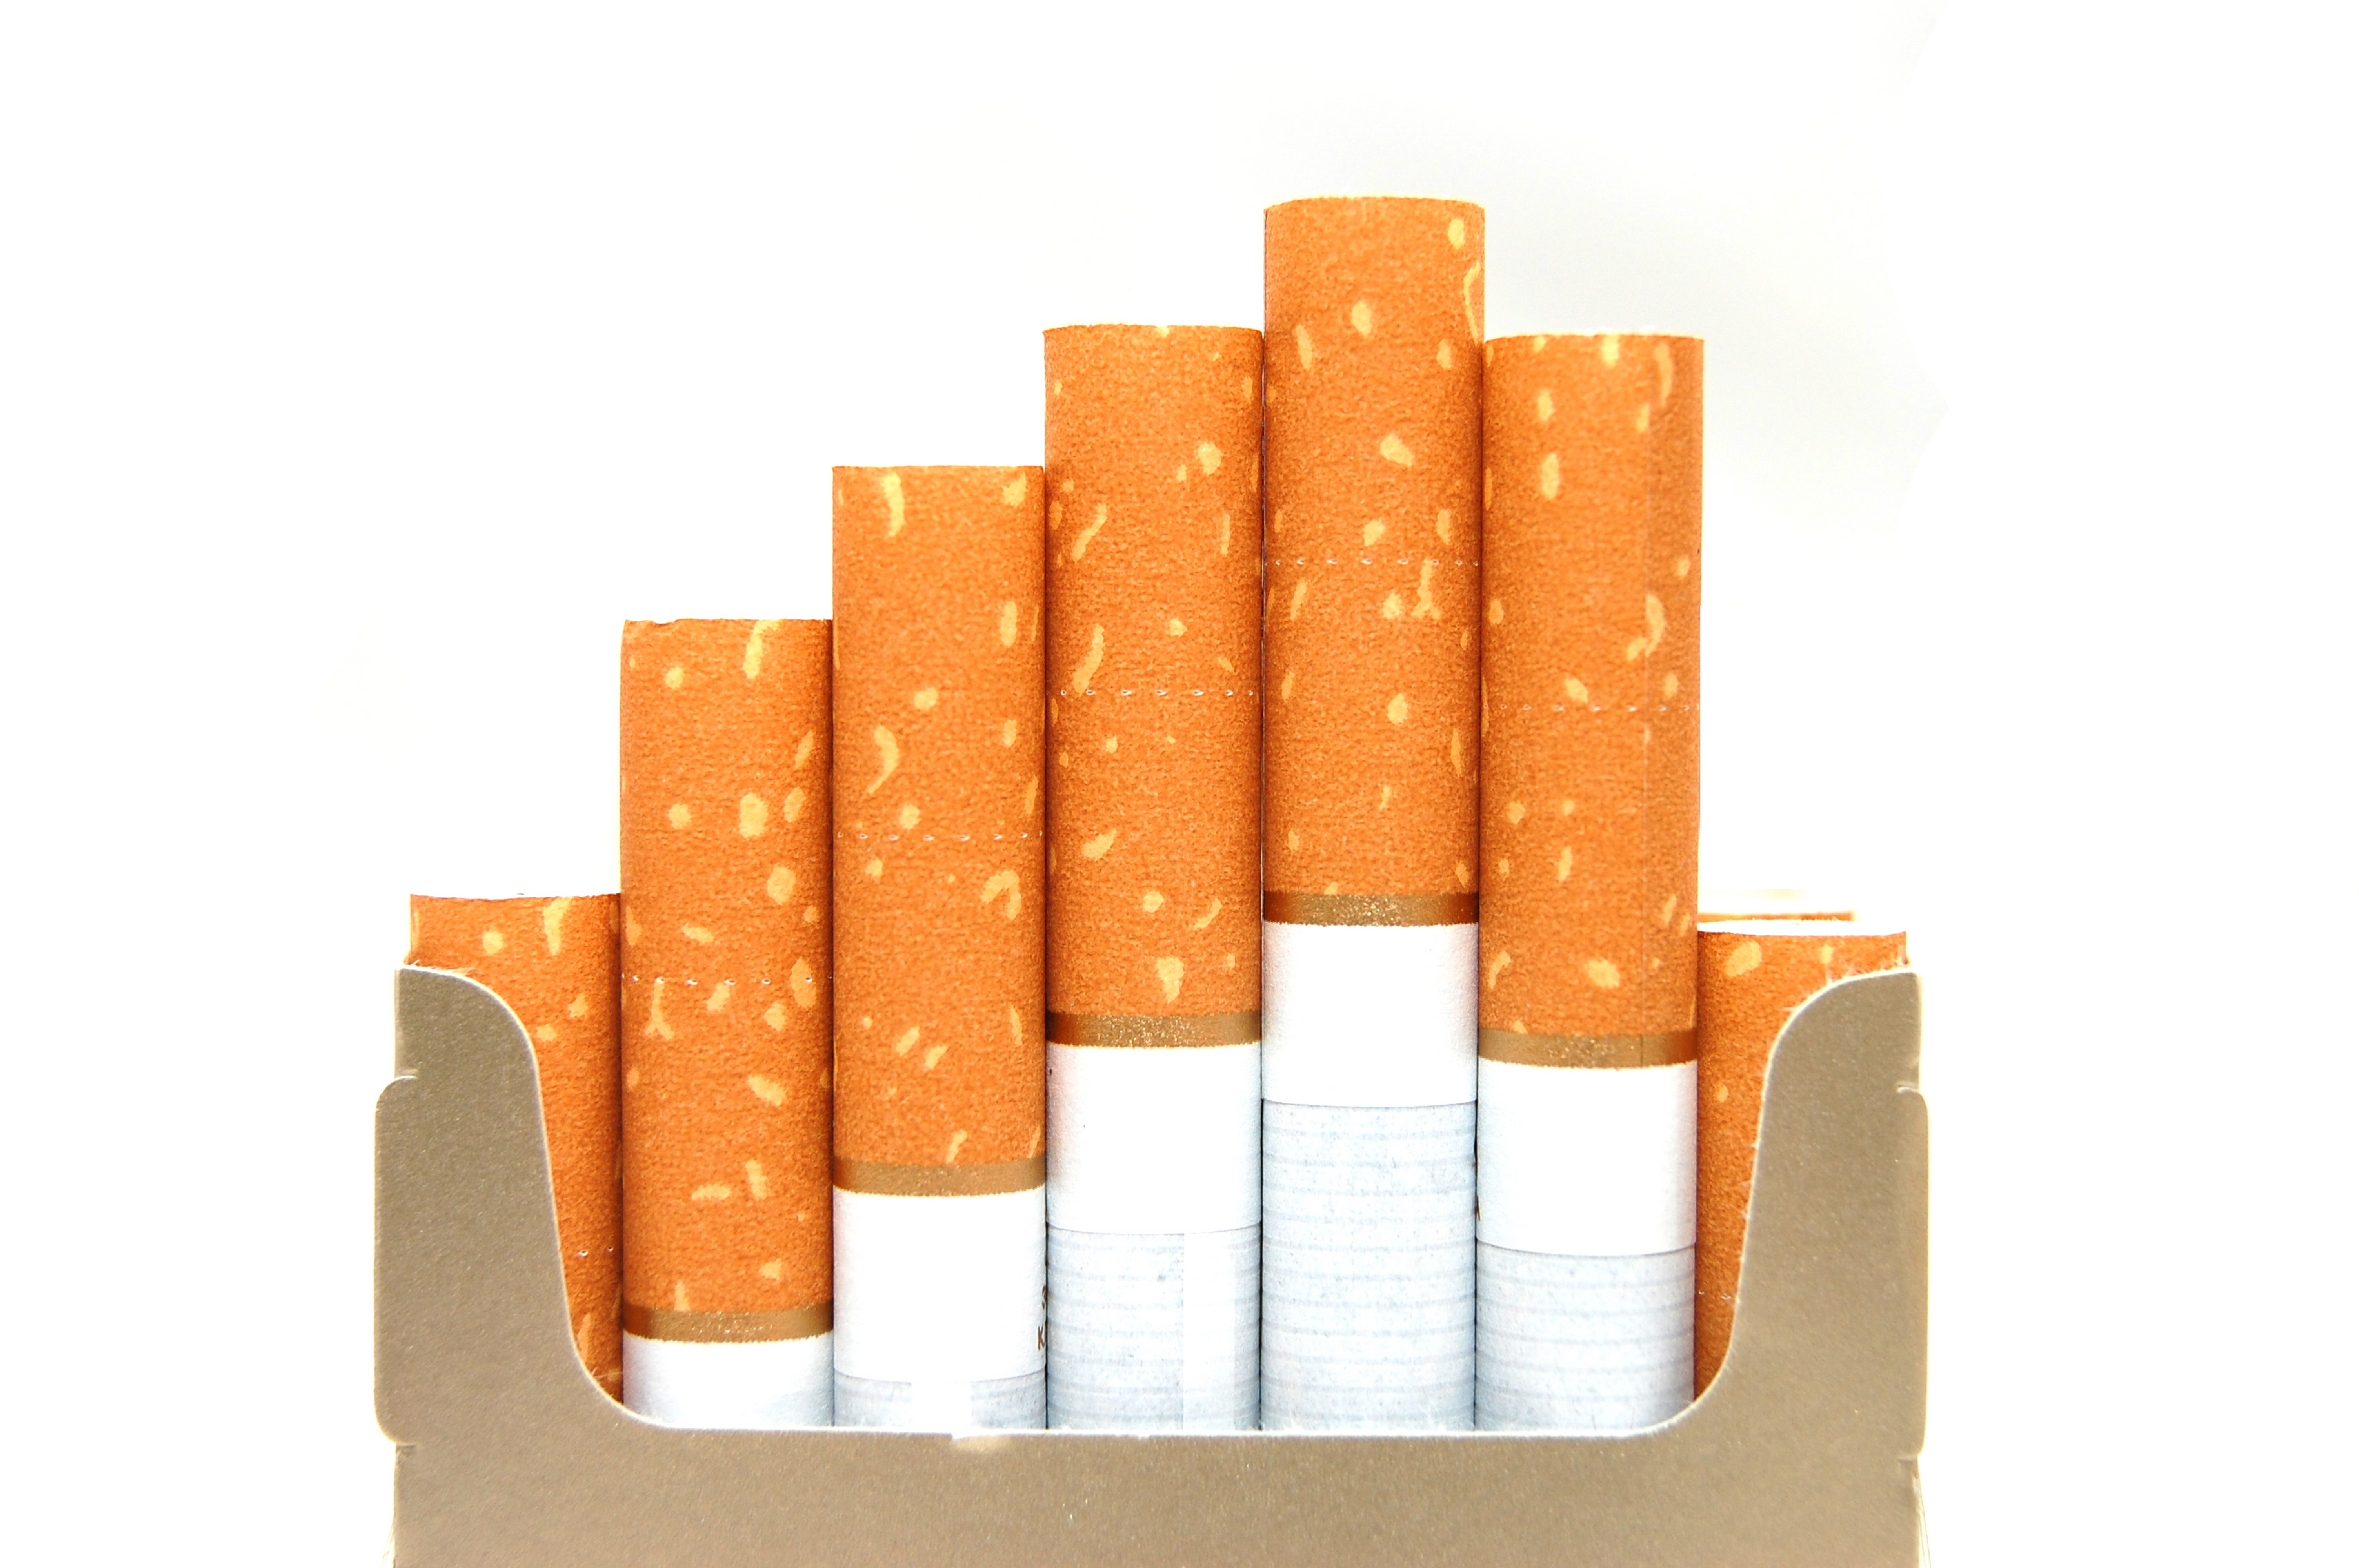 Reduced Fire Risk Cigarettes | Product Safety Australia